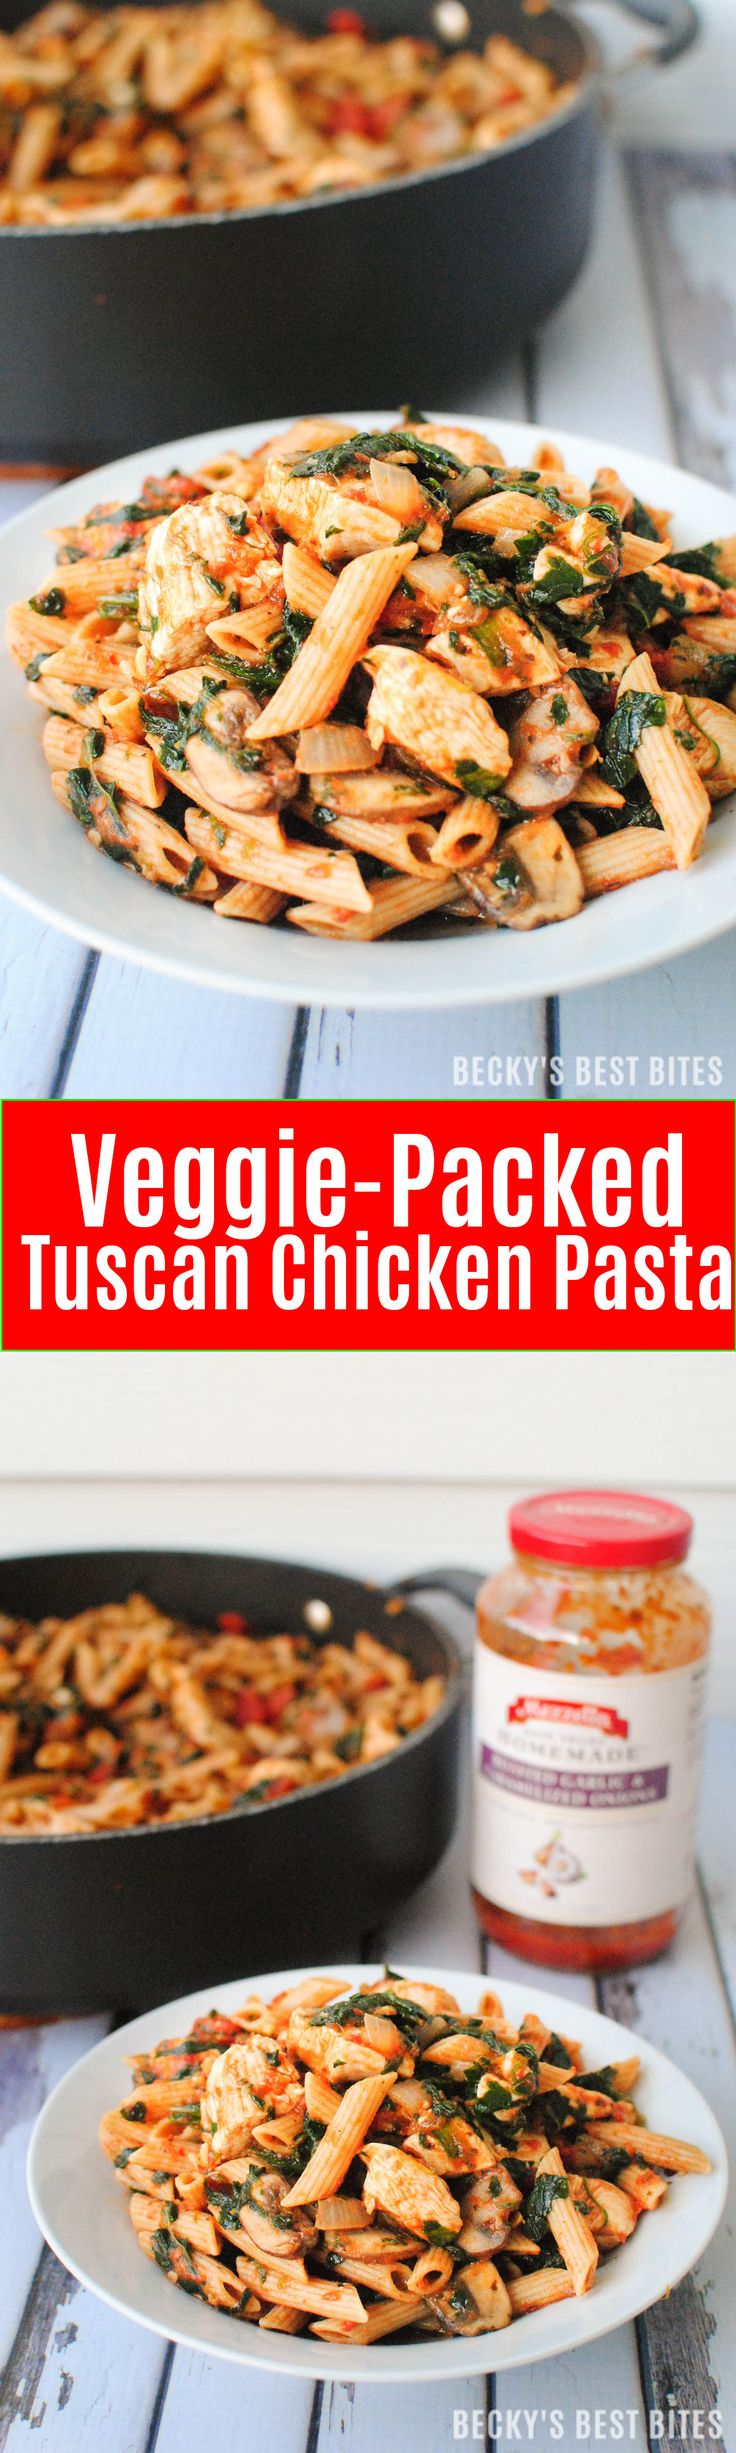 Veggie-Packed Tuscan Chicken Pasta is a healthy weeknight dinner recipe. Get a tasty meal loaded with mushrooms, tomatoes and spinach on the table in 30 minutes.| beckysbestbites.com #FallforFlavor #Ad